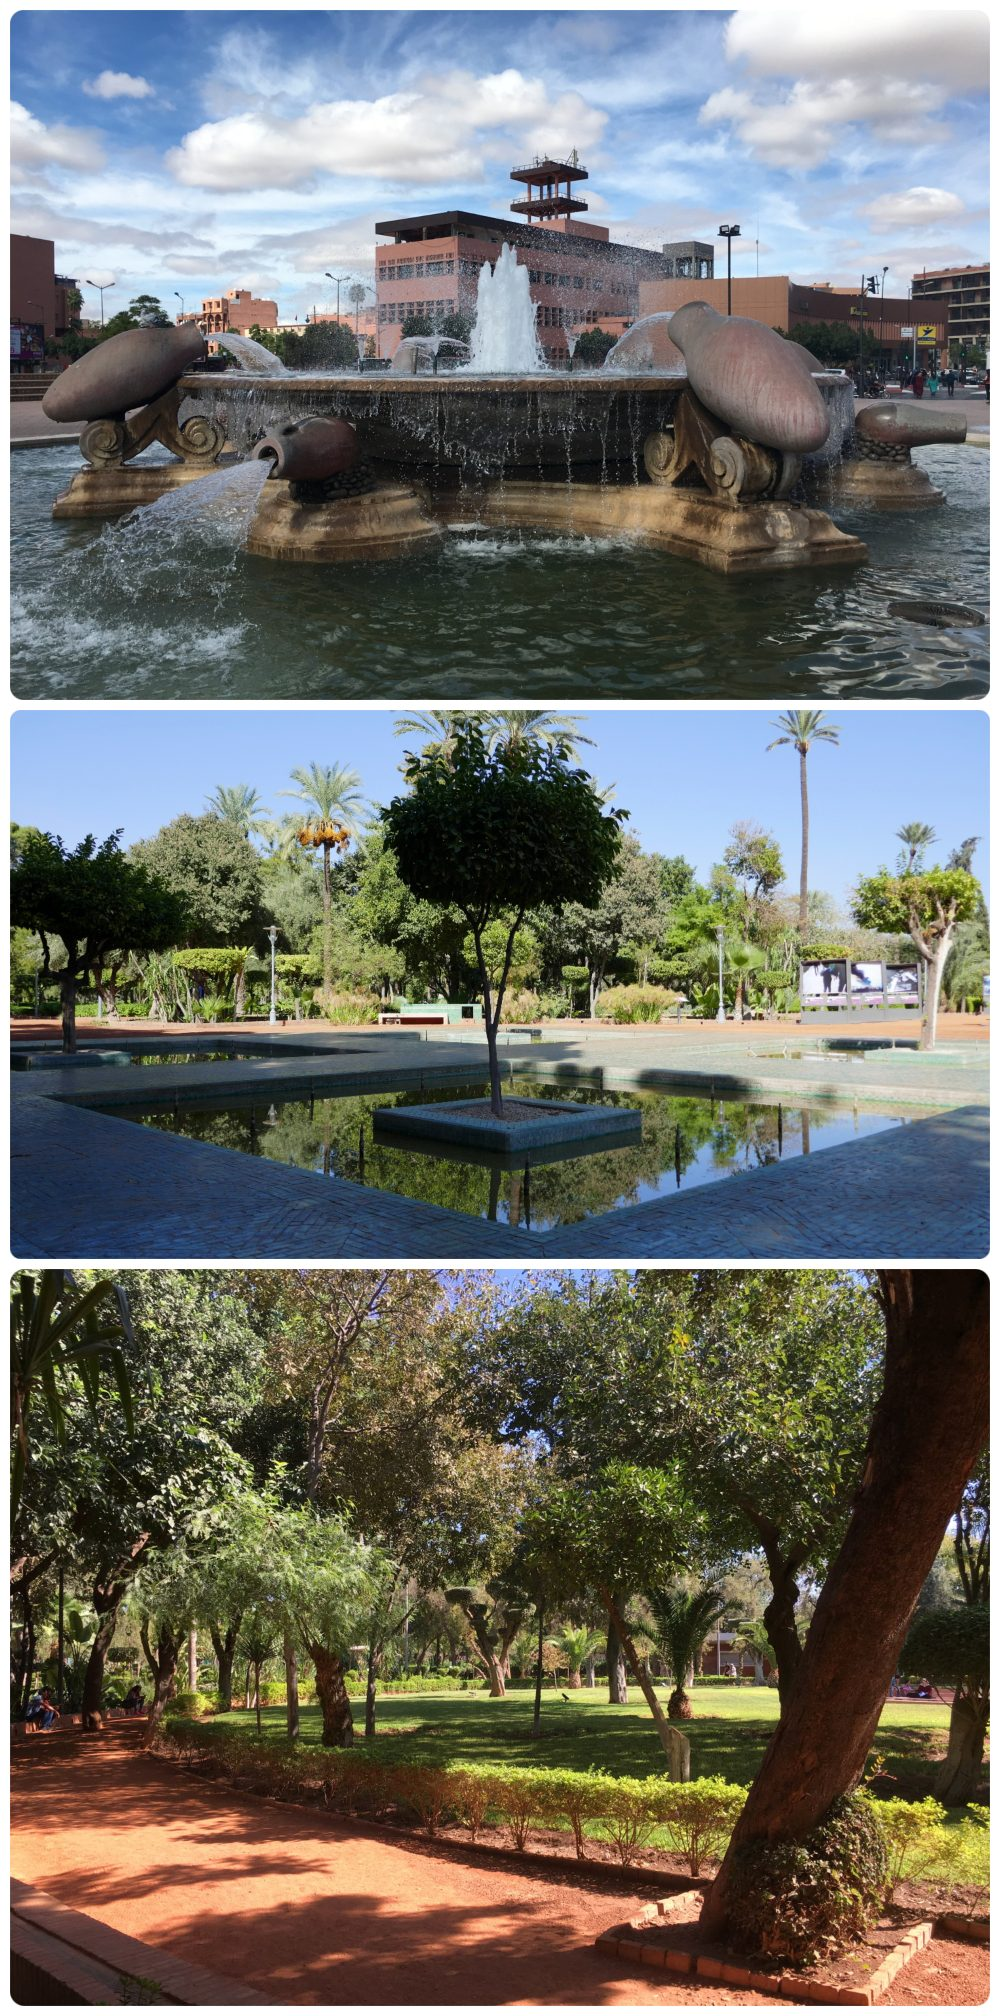 Fountains and parks in Marrakech, Morocco.